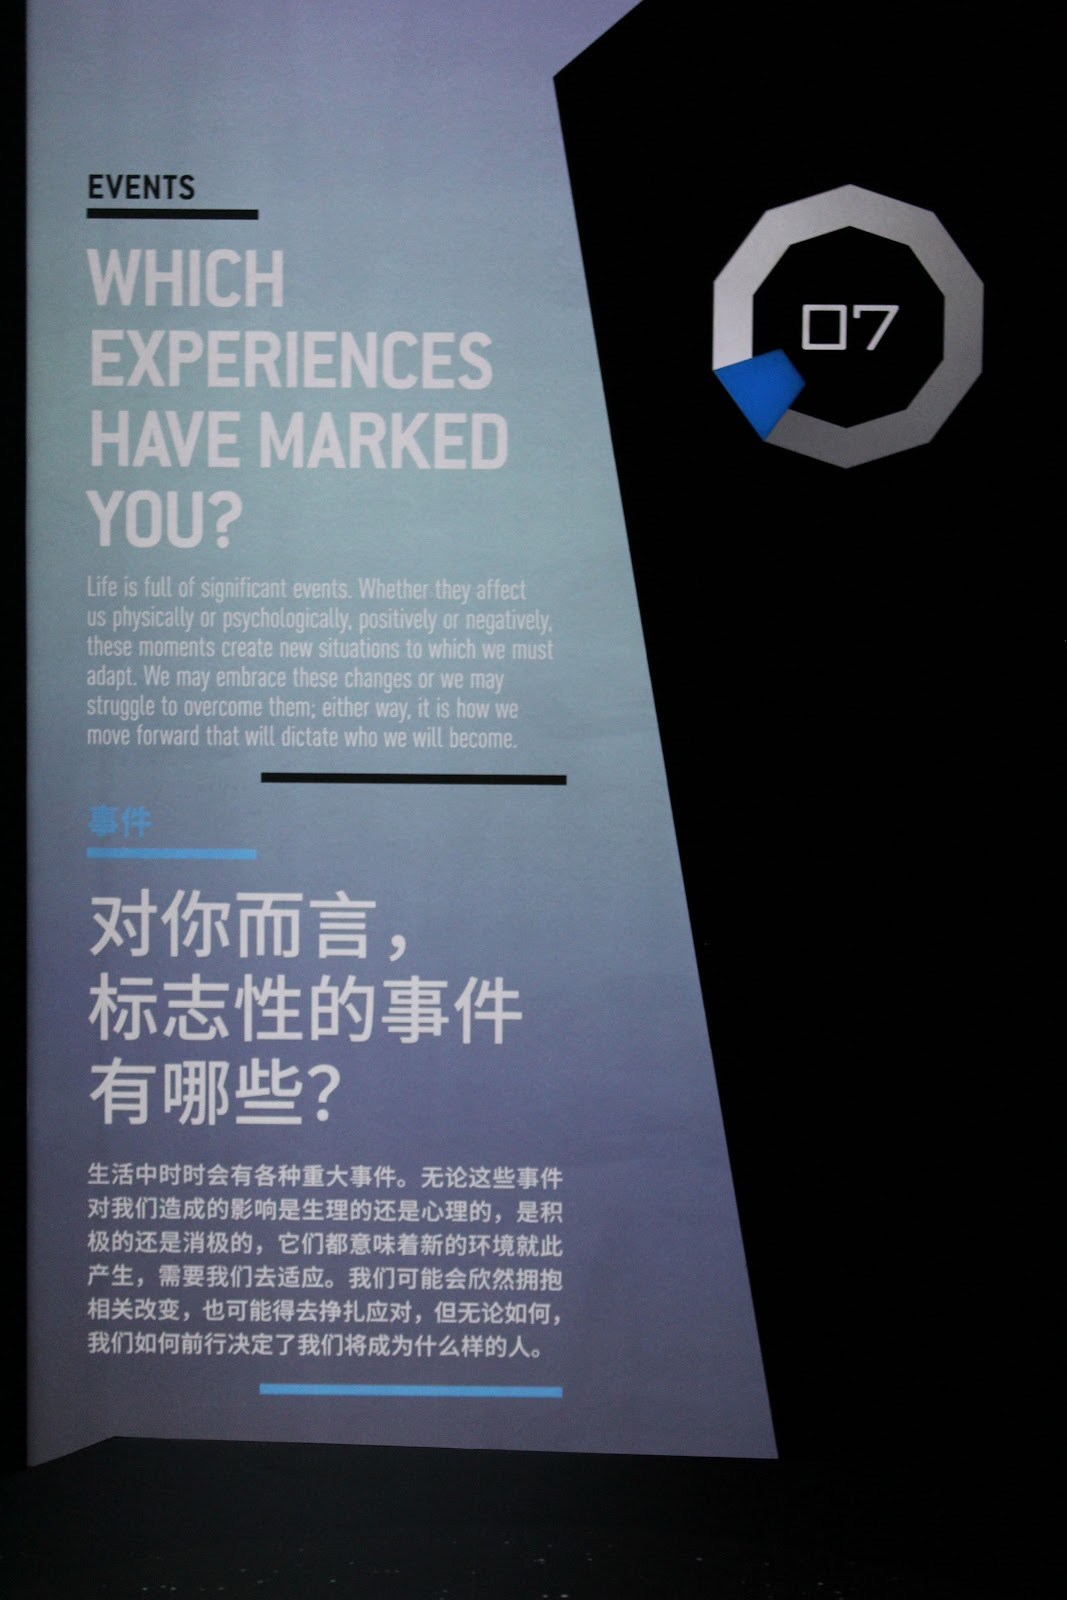 Informational display on Experiences